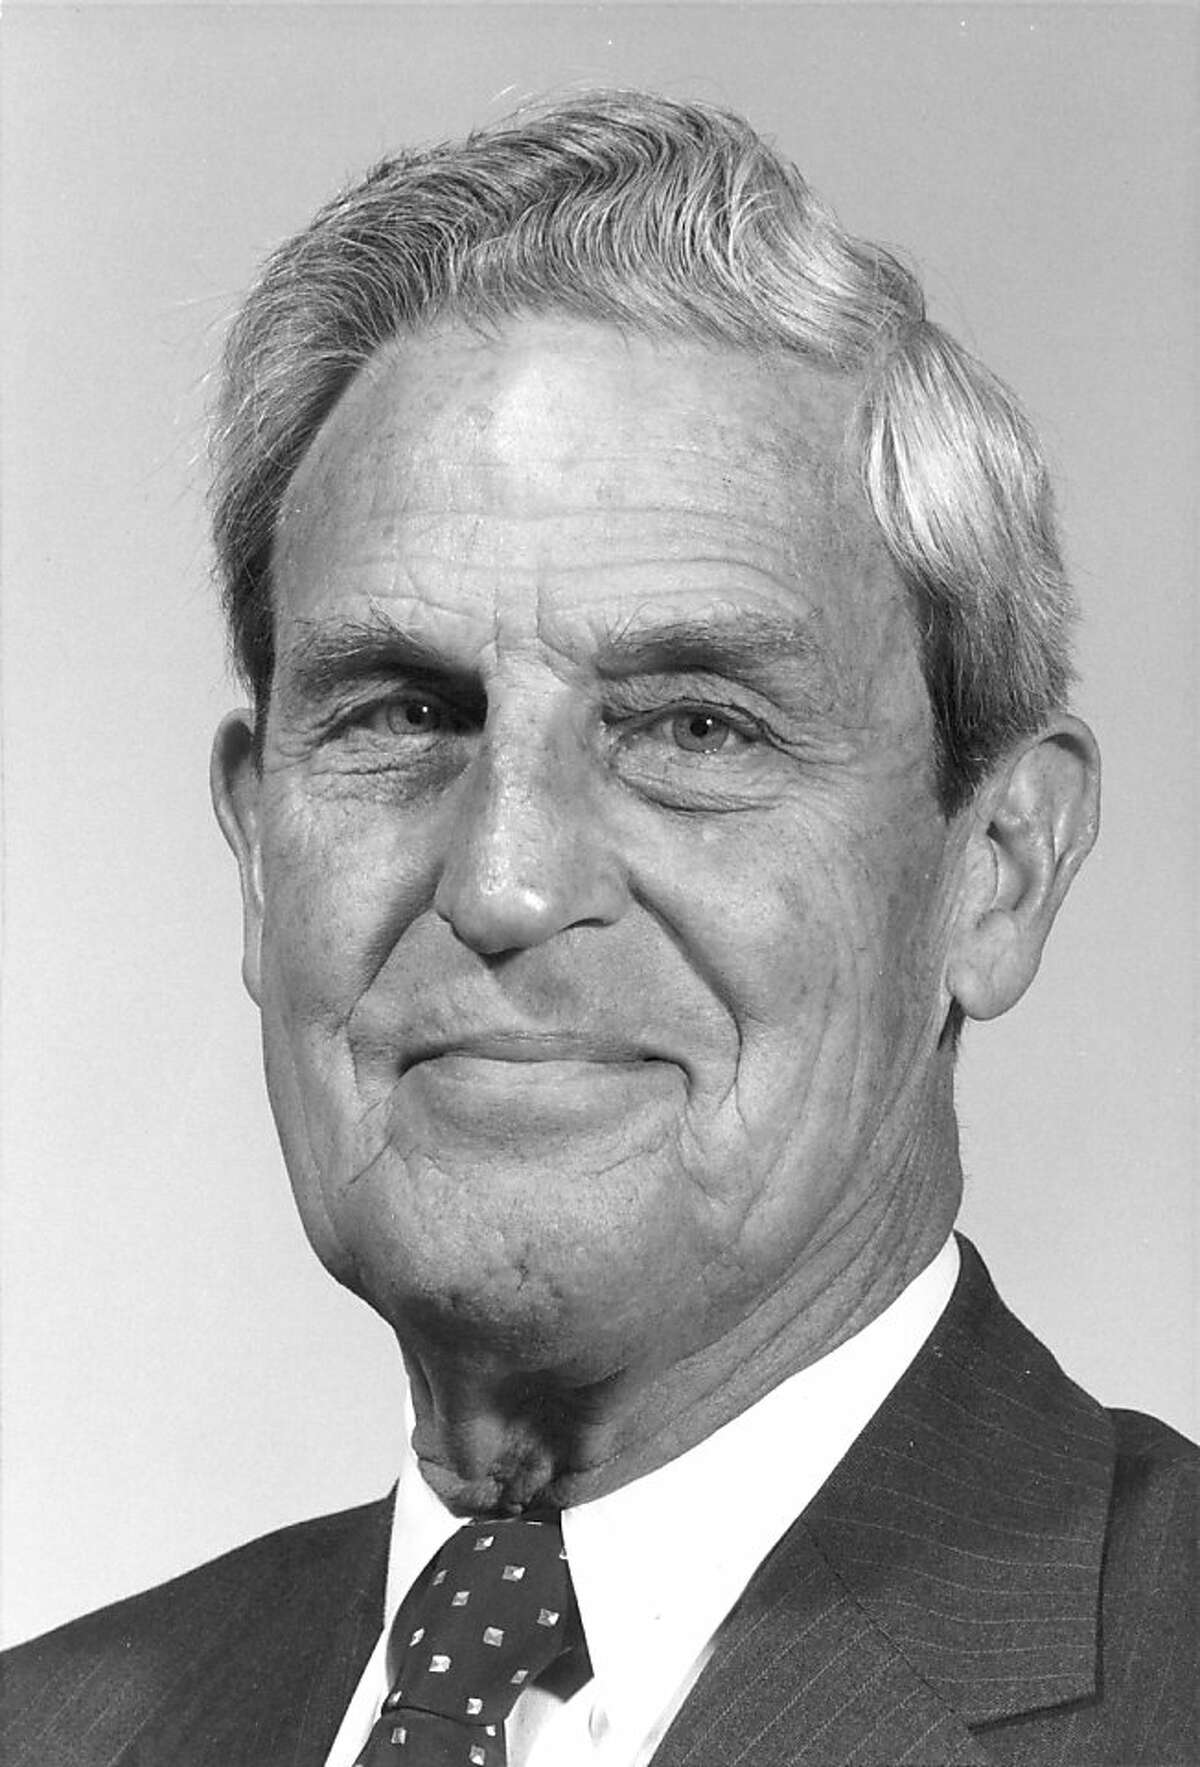 Dr. Benson B. Roe, a UCSF cardiac surgeon who conducted significant early research on artificial hearts and materials for synthetic heart valves and blood vessels.